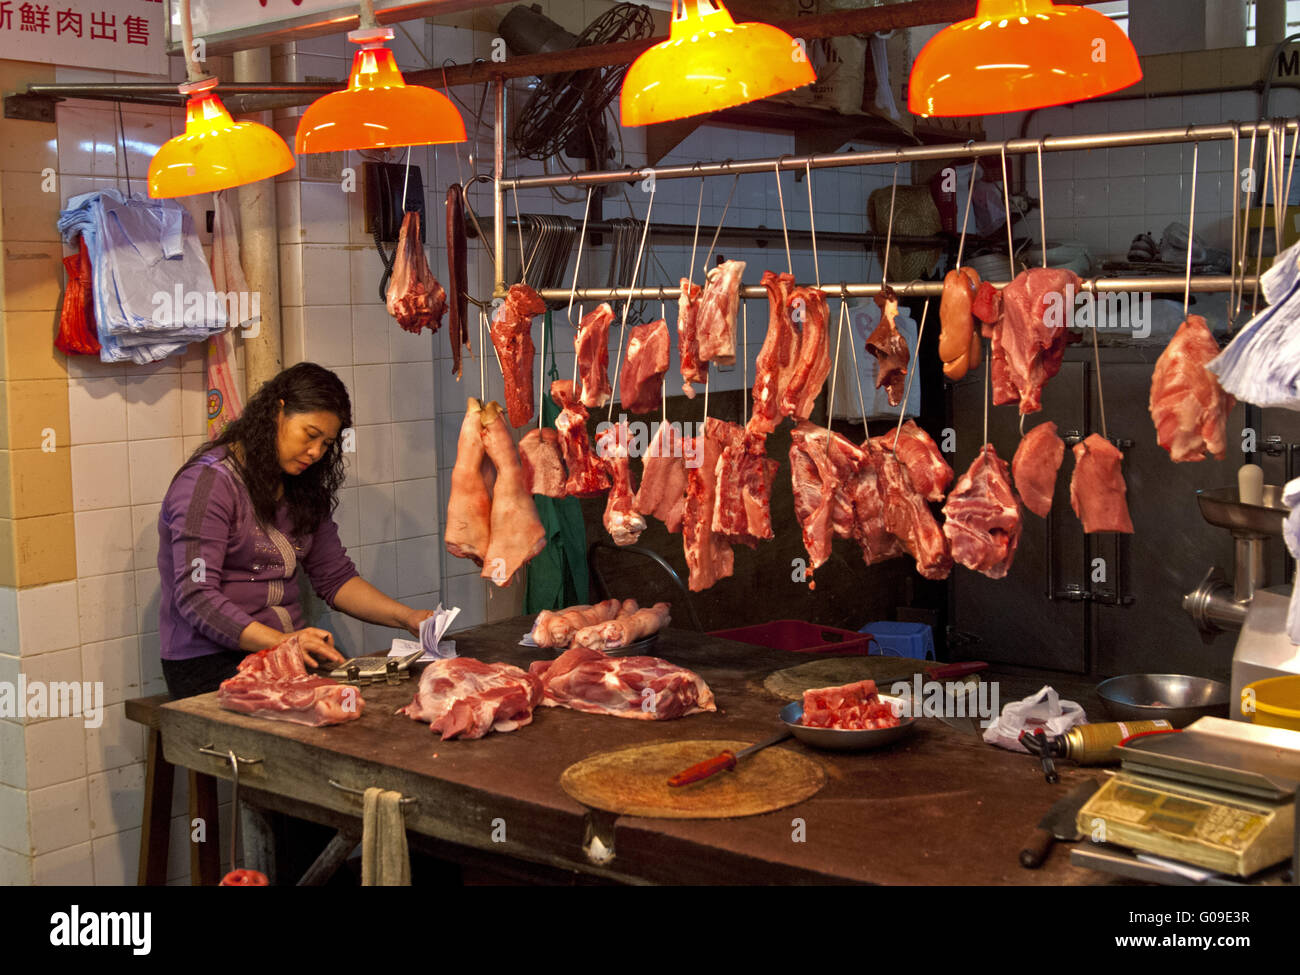 meat market stock images - photo #1